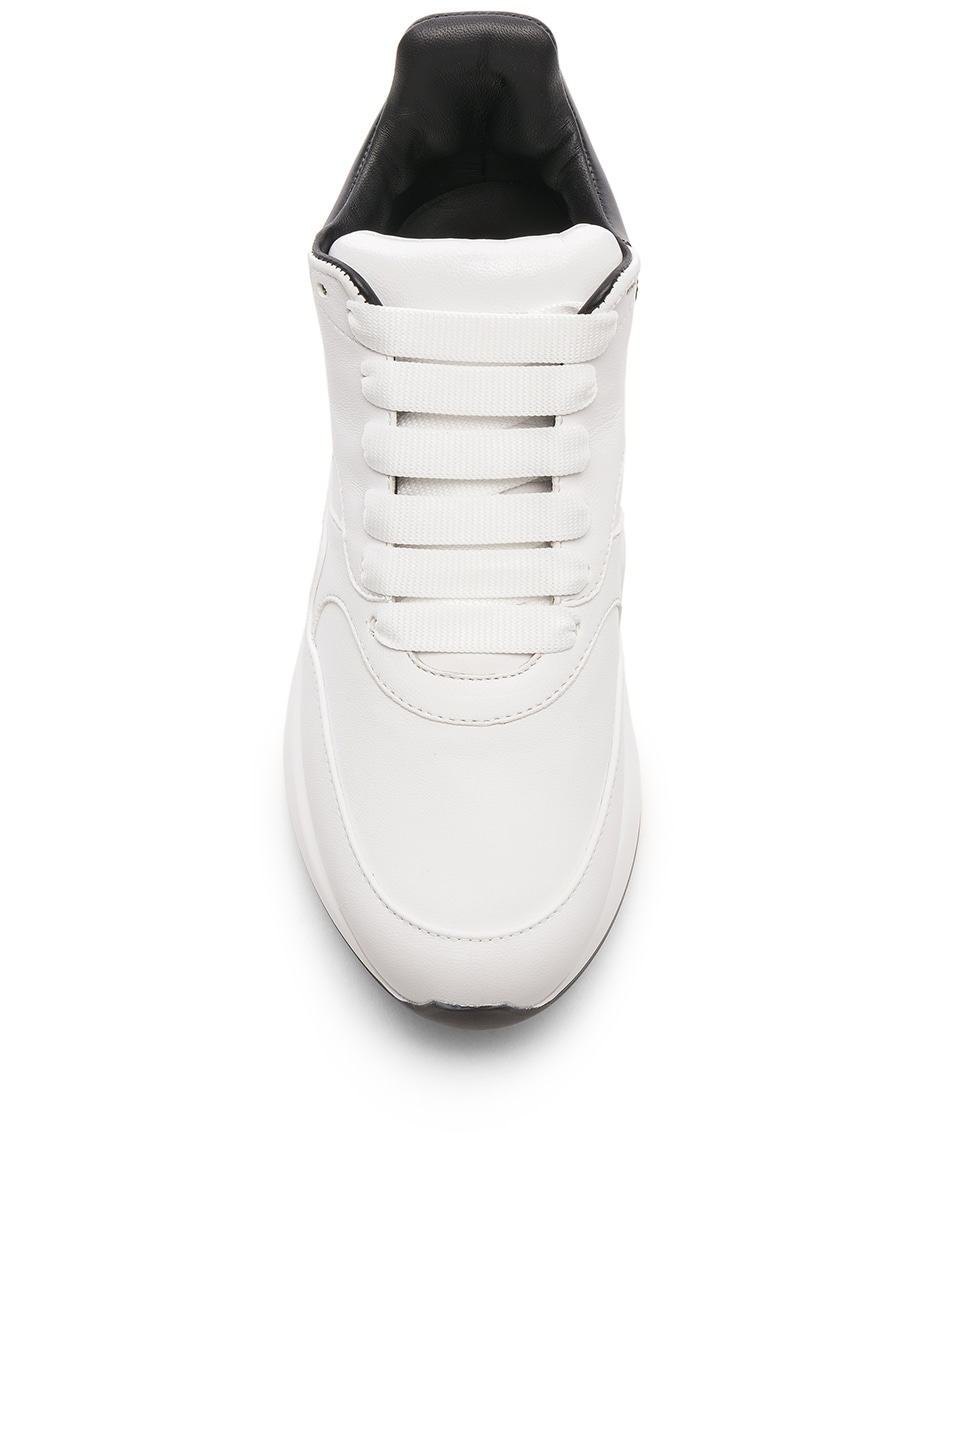 Image 4 of Alexander McQueen Two Tone Platform Sneakers in Optic White & Black